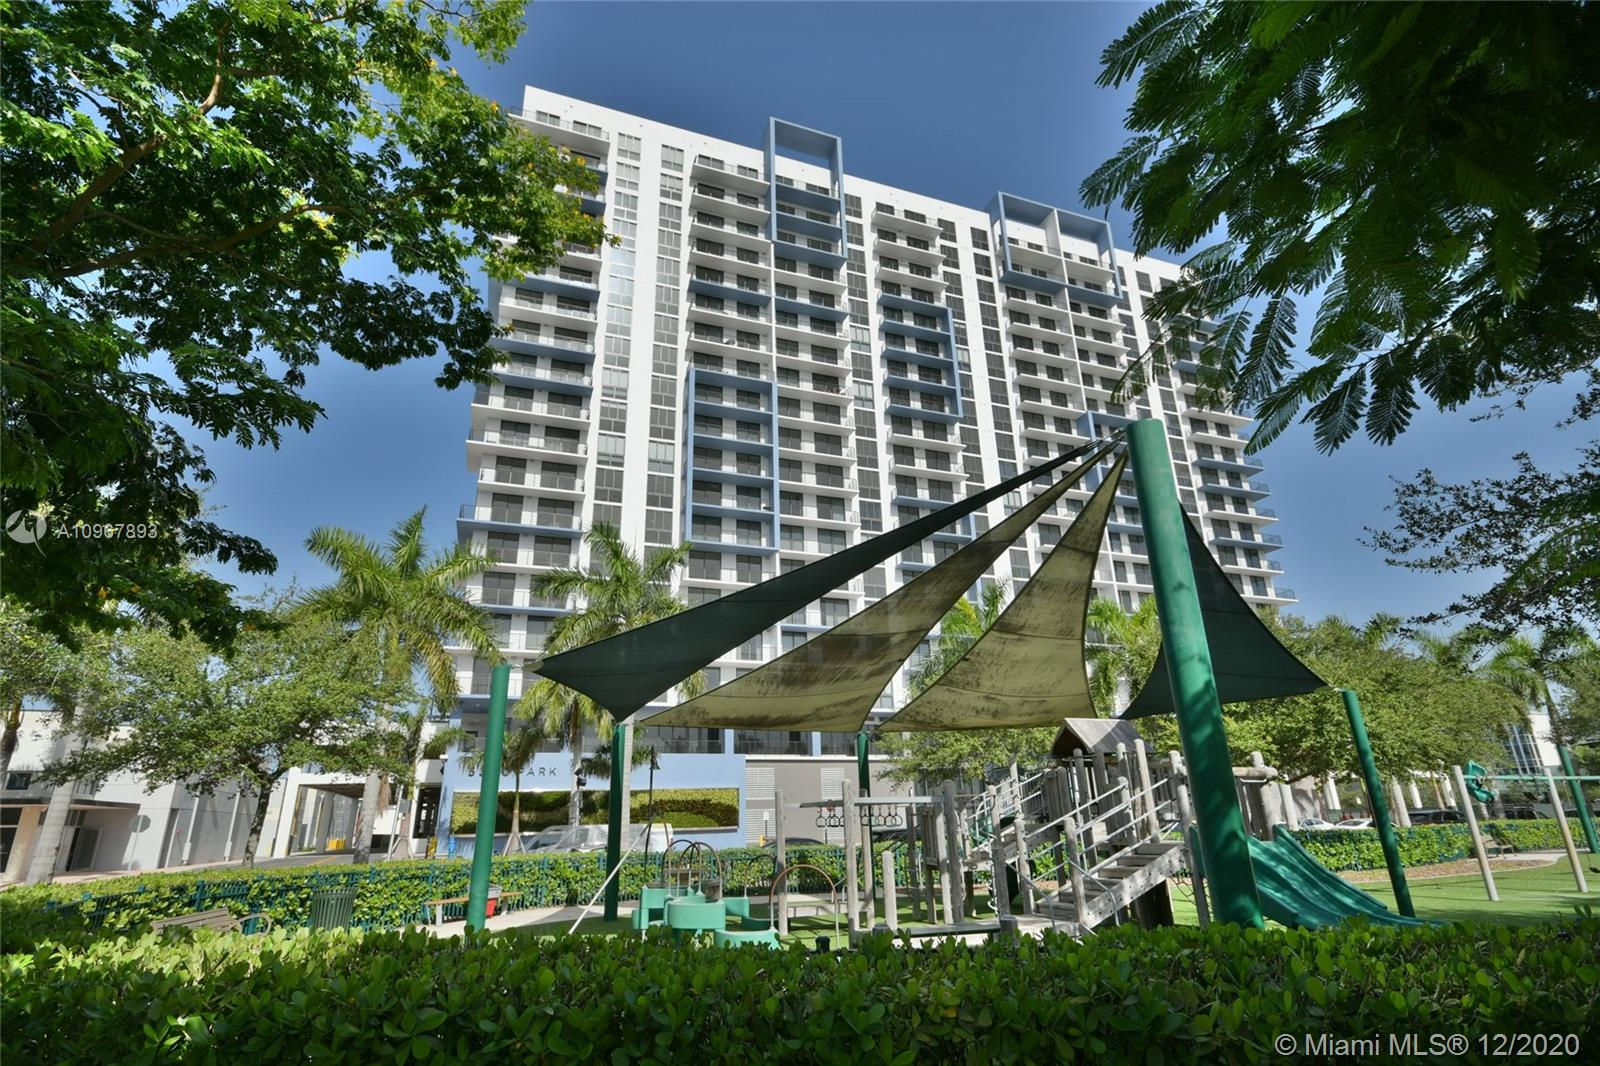 5300 Paseo #1703 - 5300 NW 85th Ave #1703, Doral, FL 33166